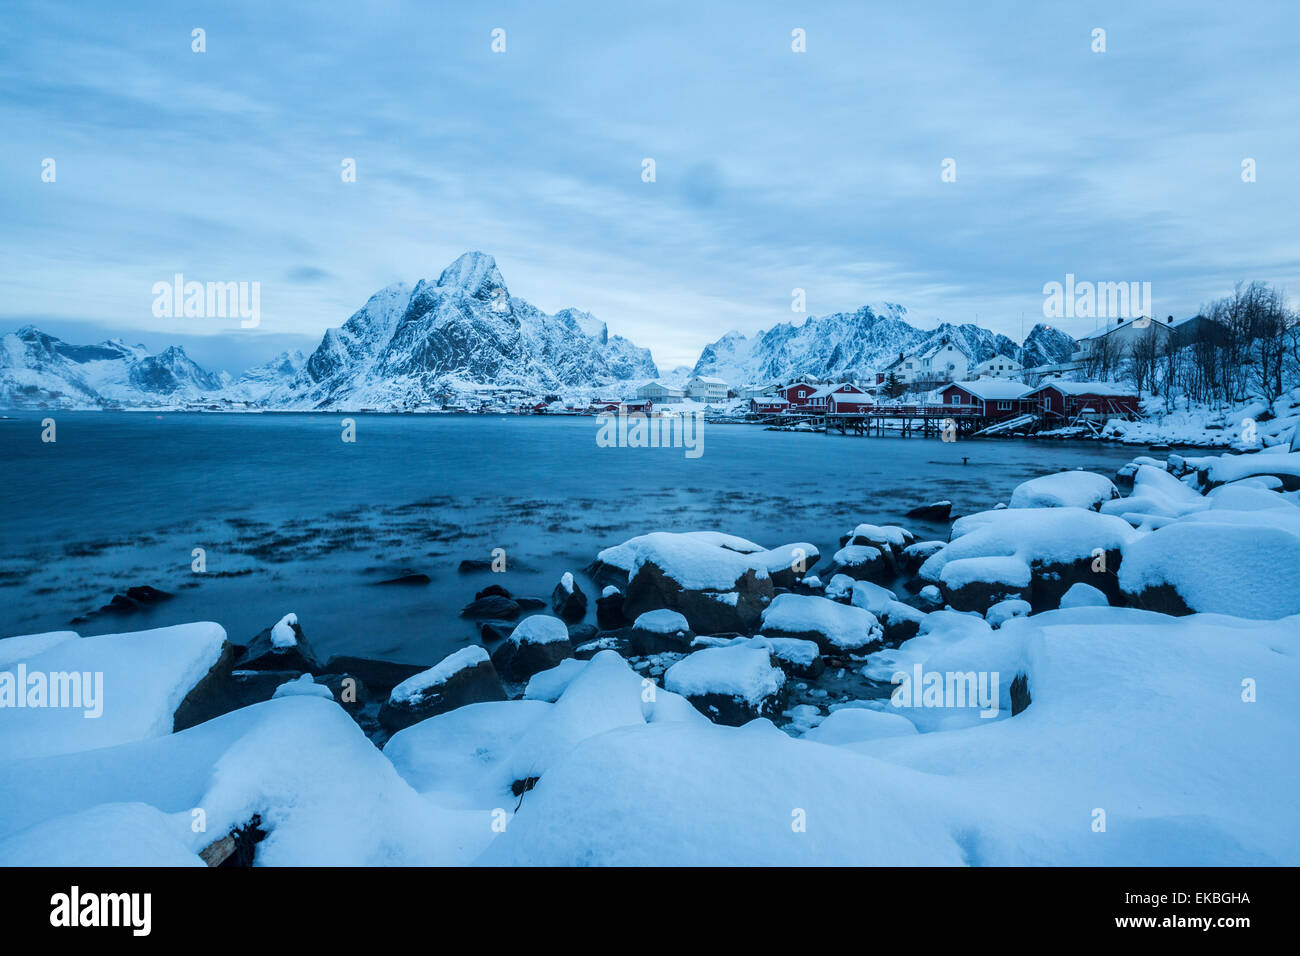 Blue hour in the bay of Reine, Reine, Lofoten Islands, Norway Stock Photo